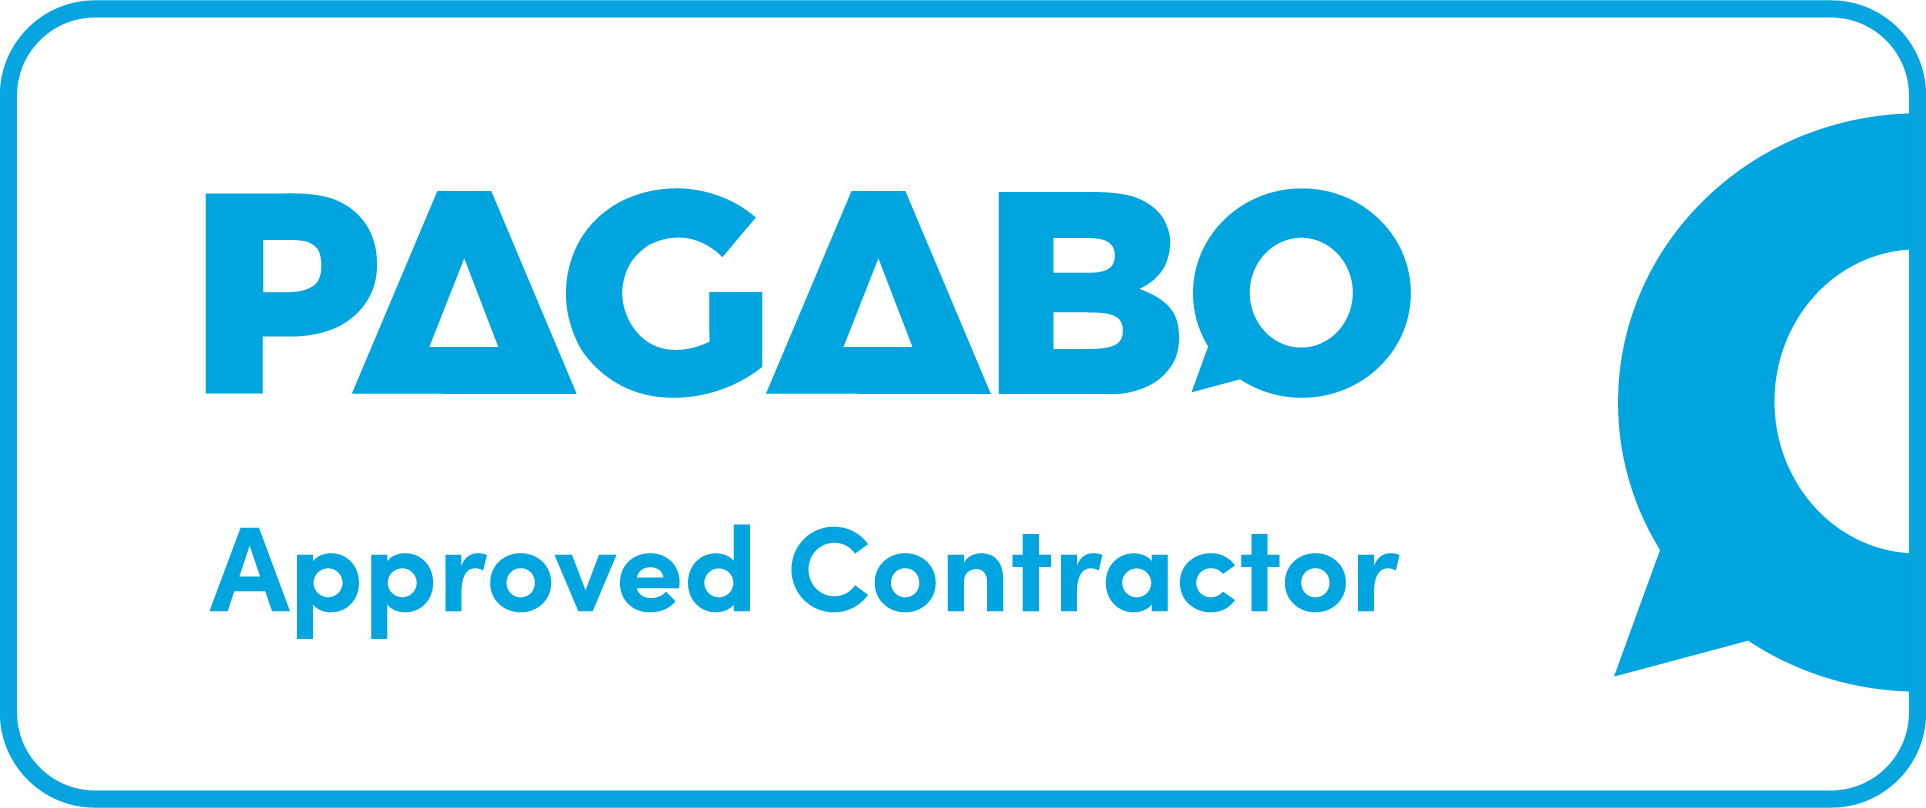 PAGABO Approved Contractor